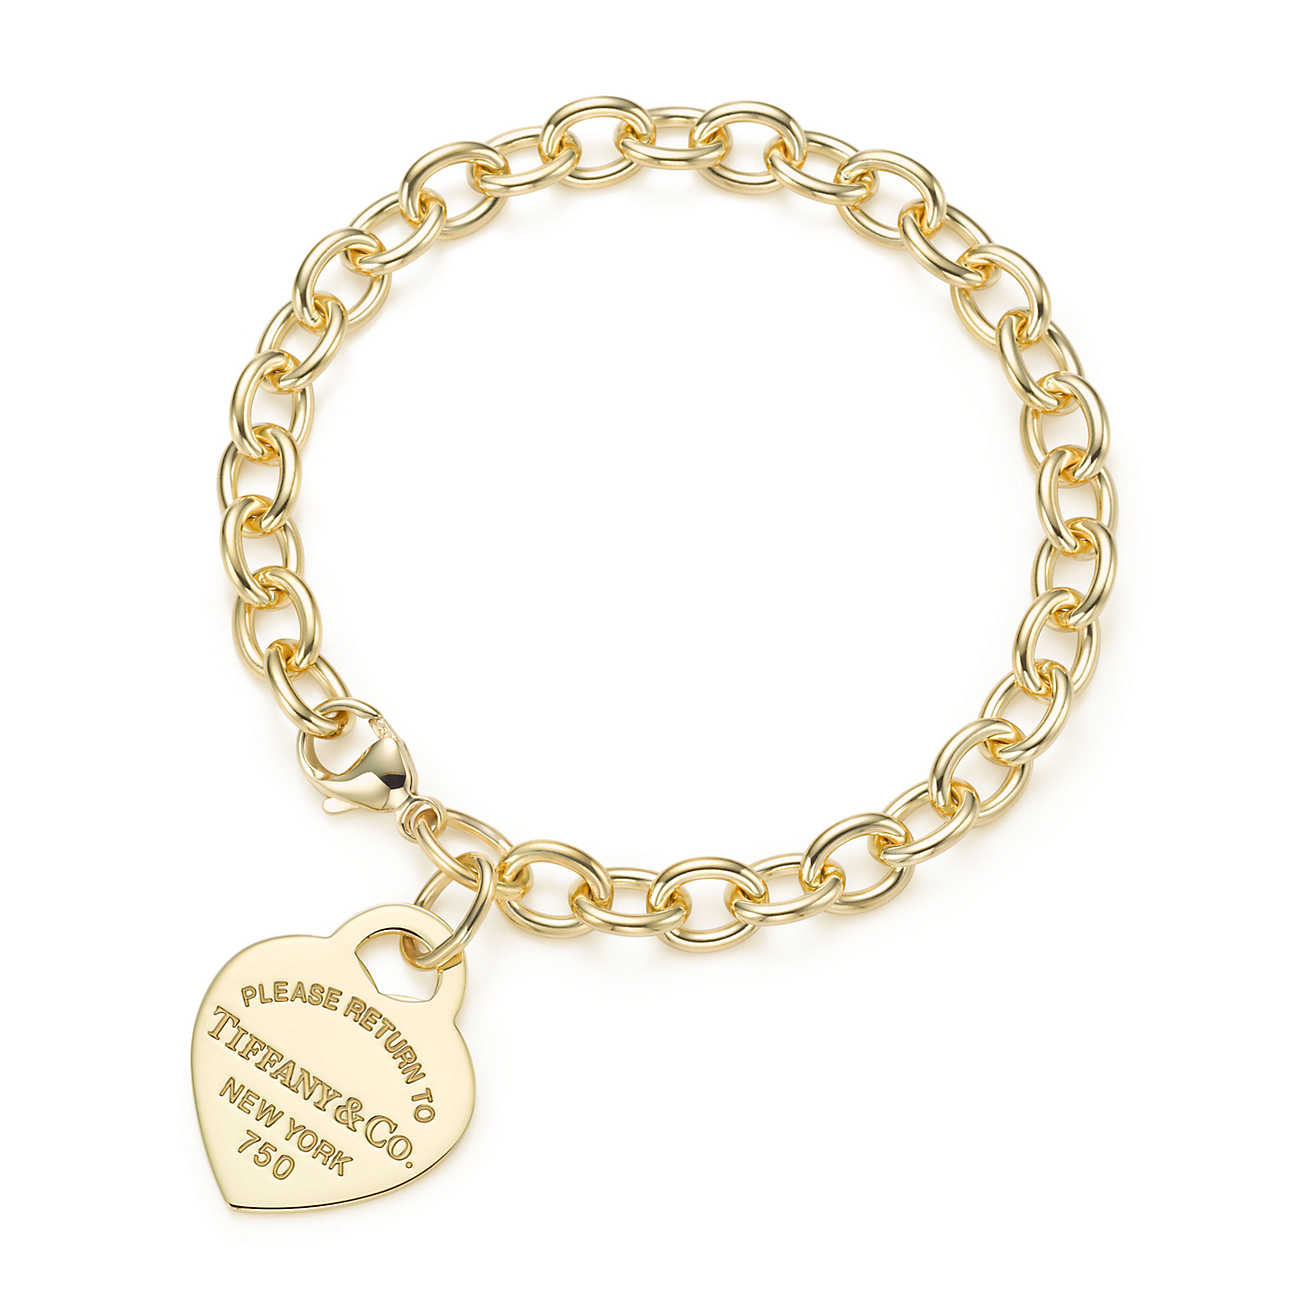 new trendy gold bracelets designs